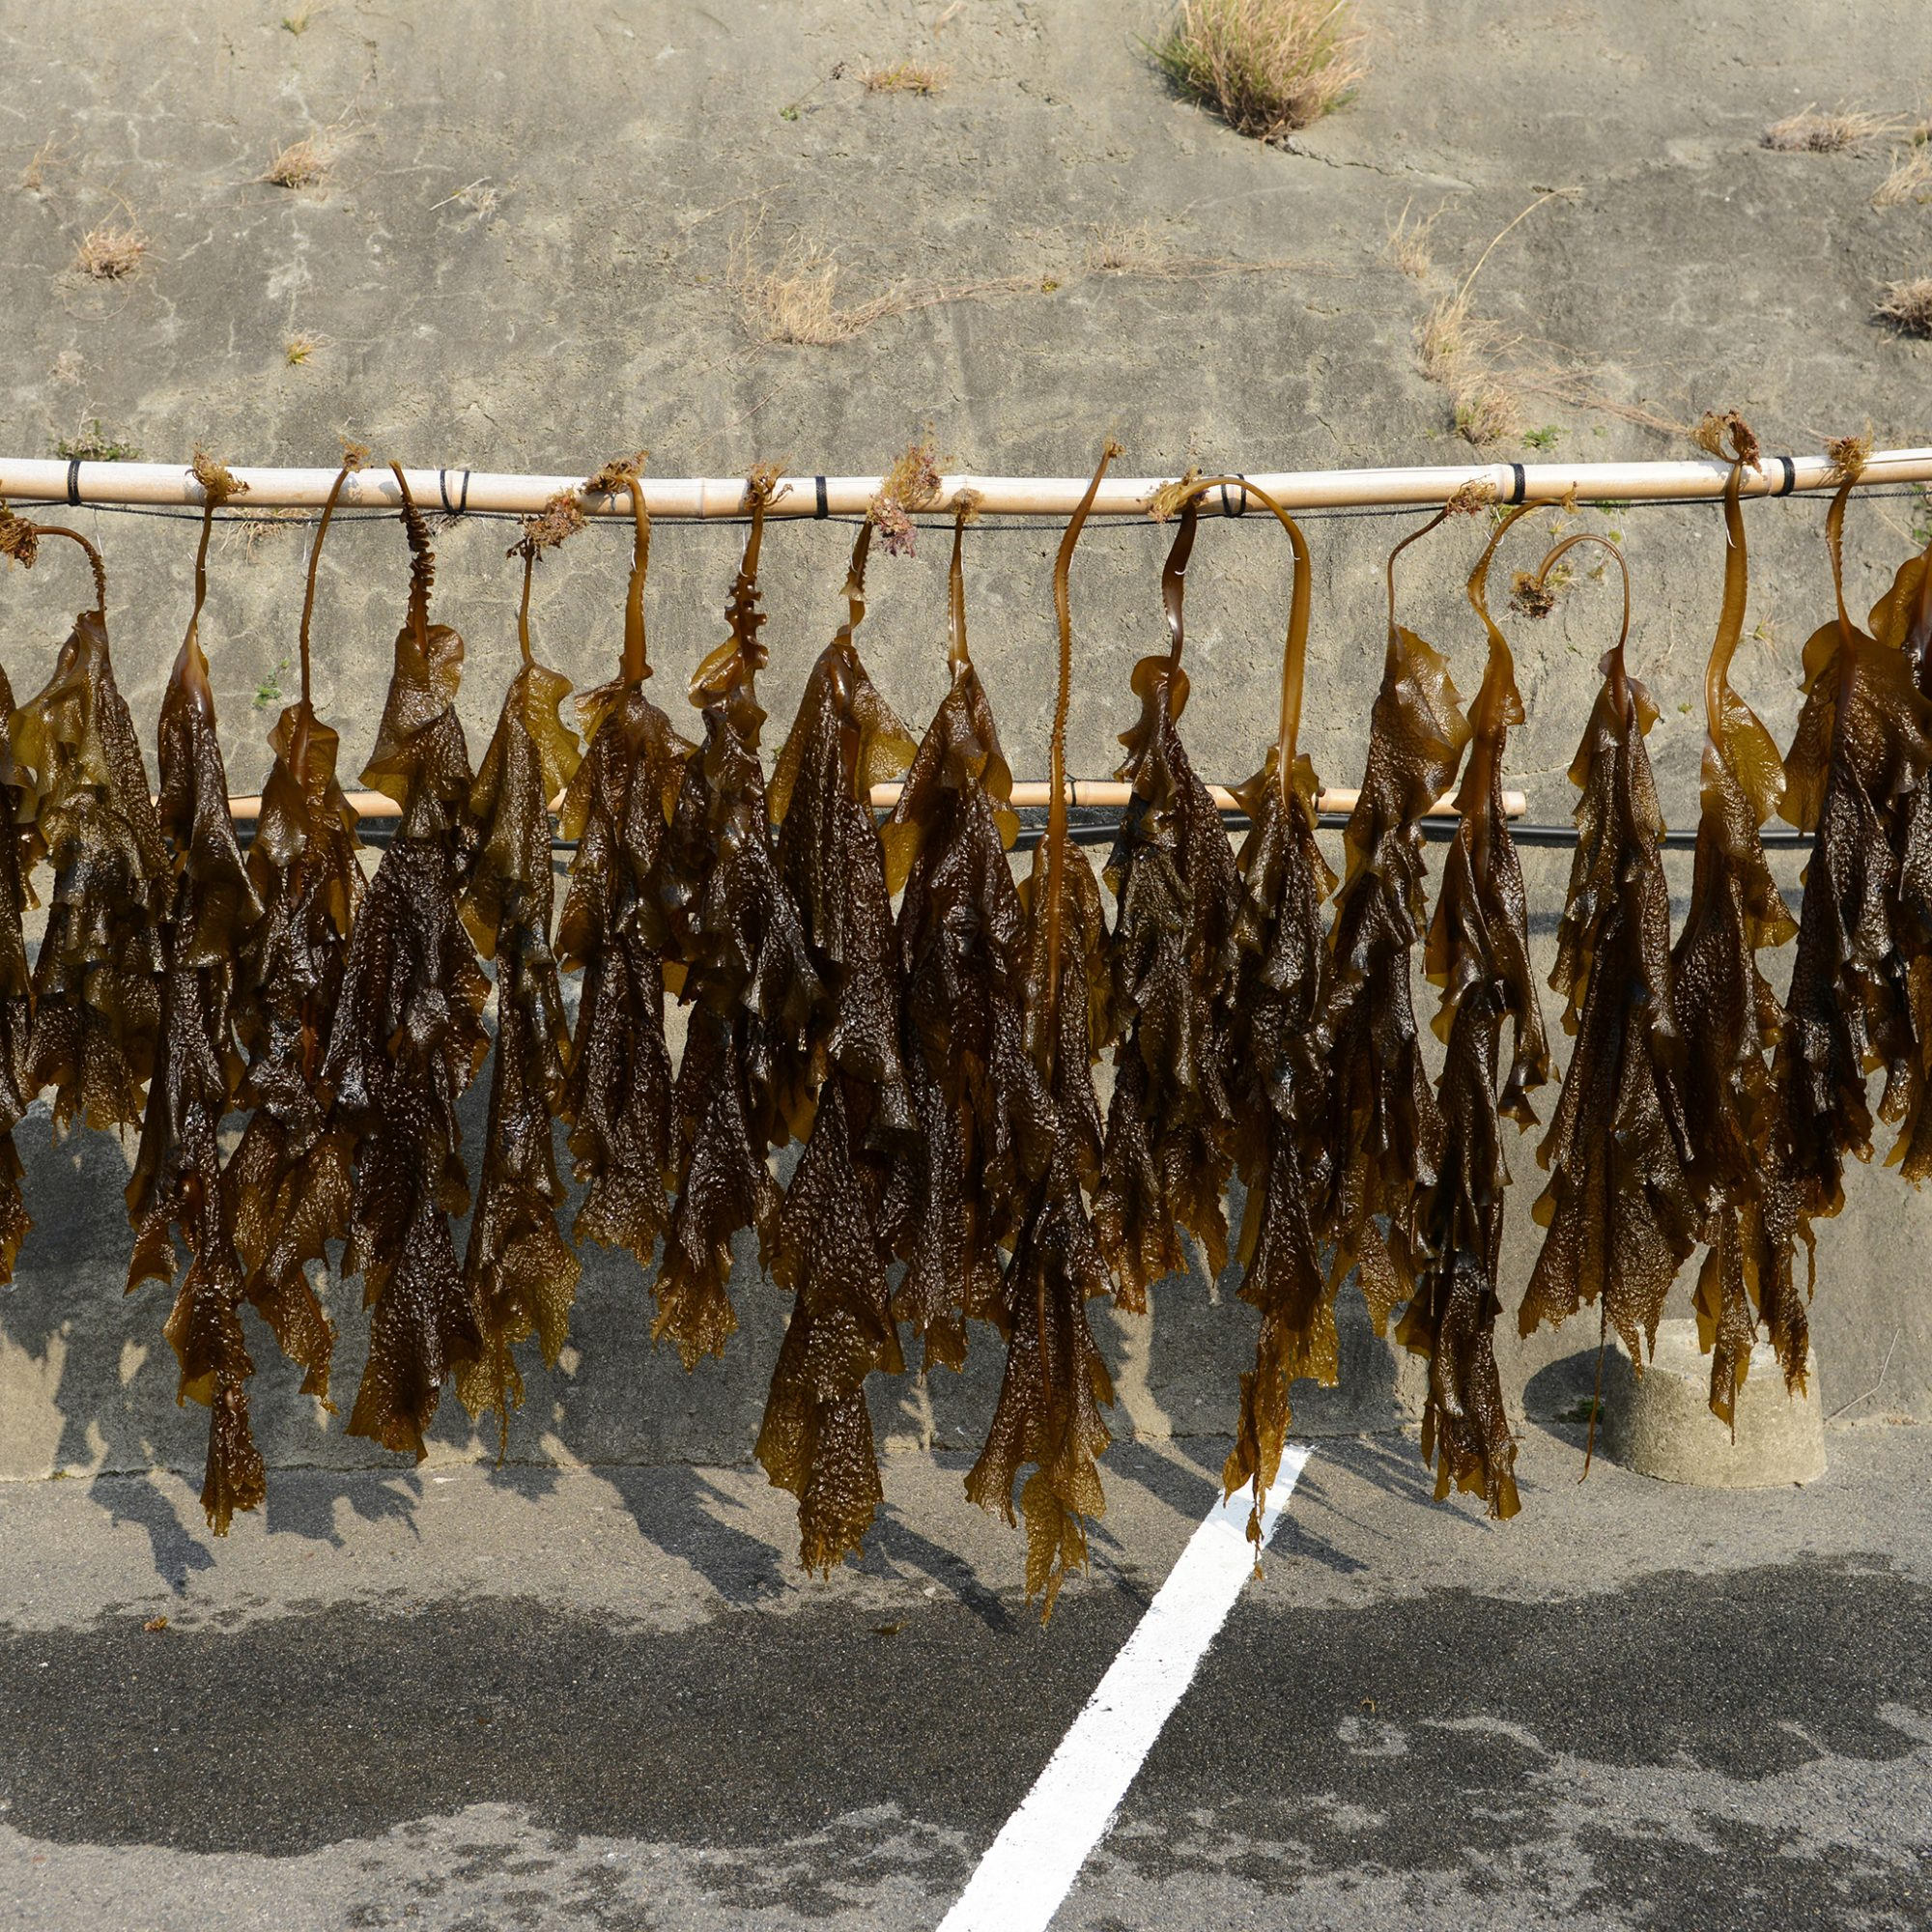 FWX SCIENTISTS THINK WE SHOULD EAT SEAWEED EVERY DAY